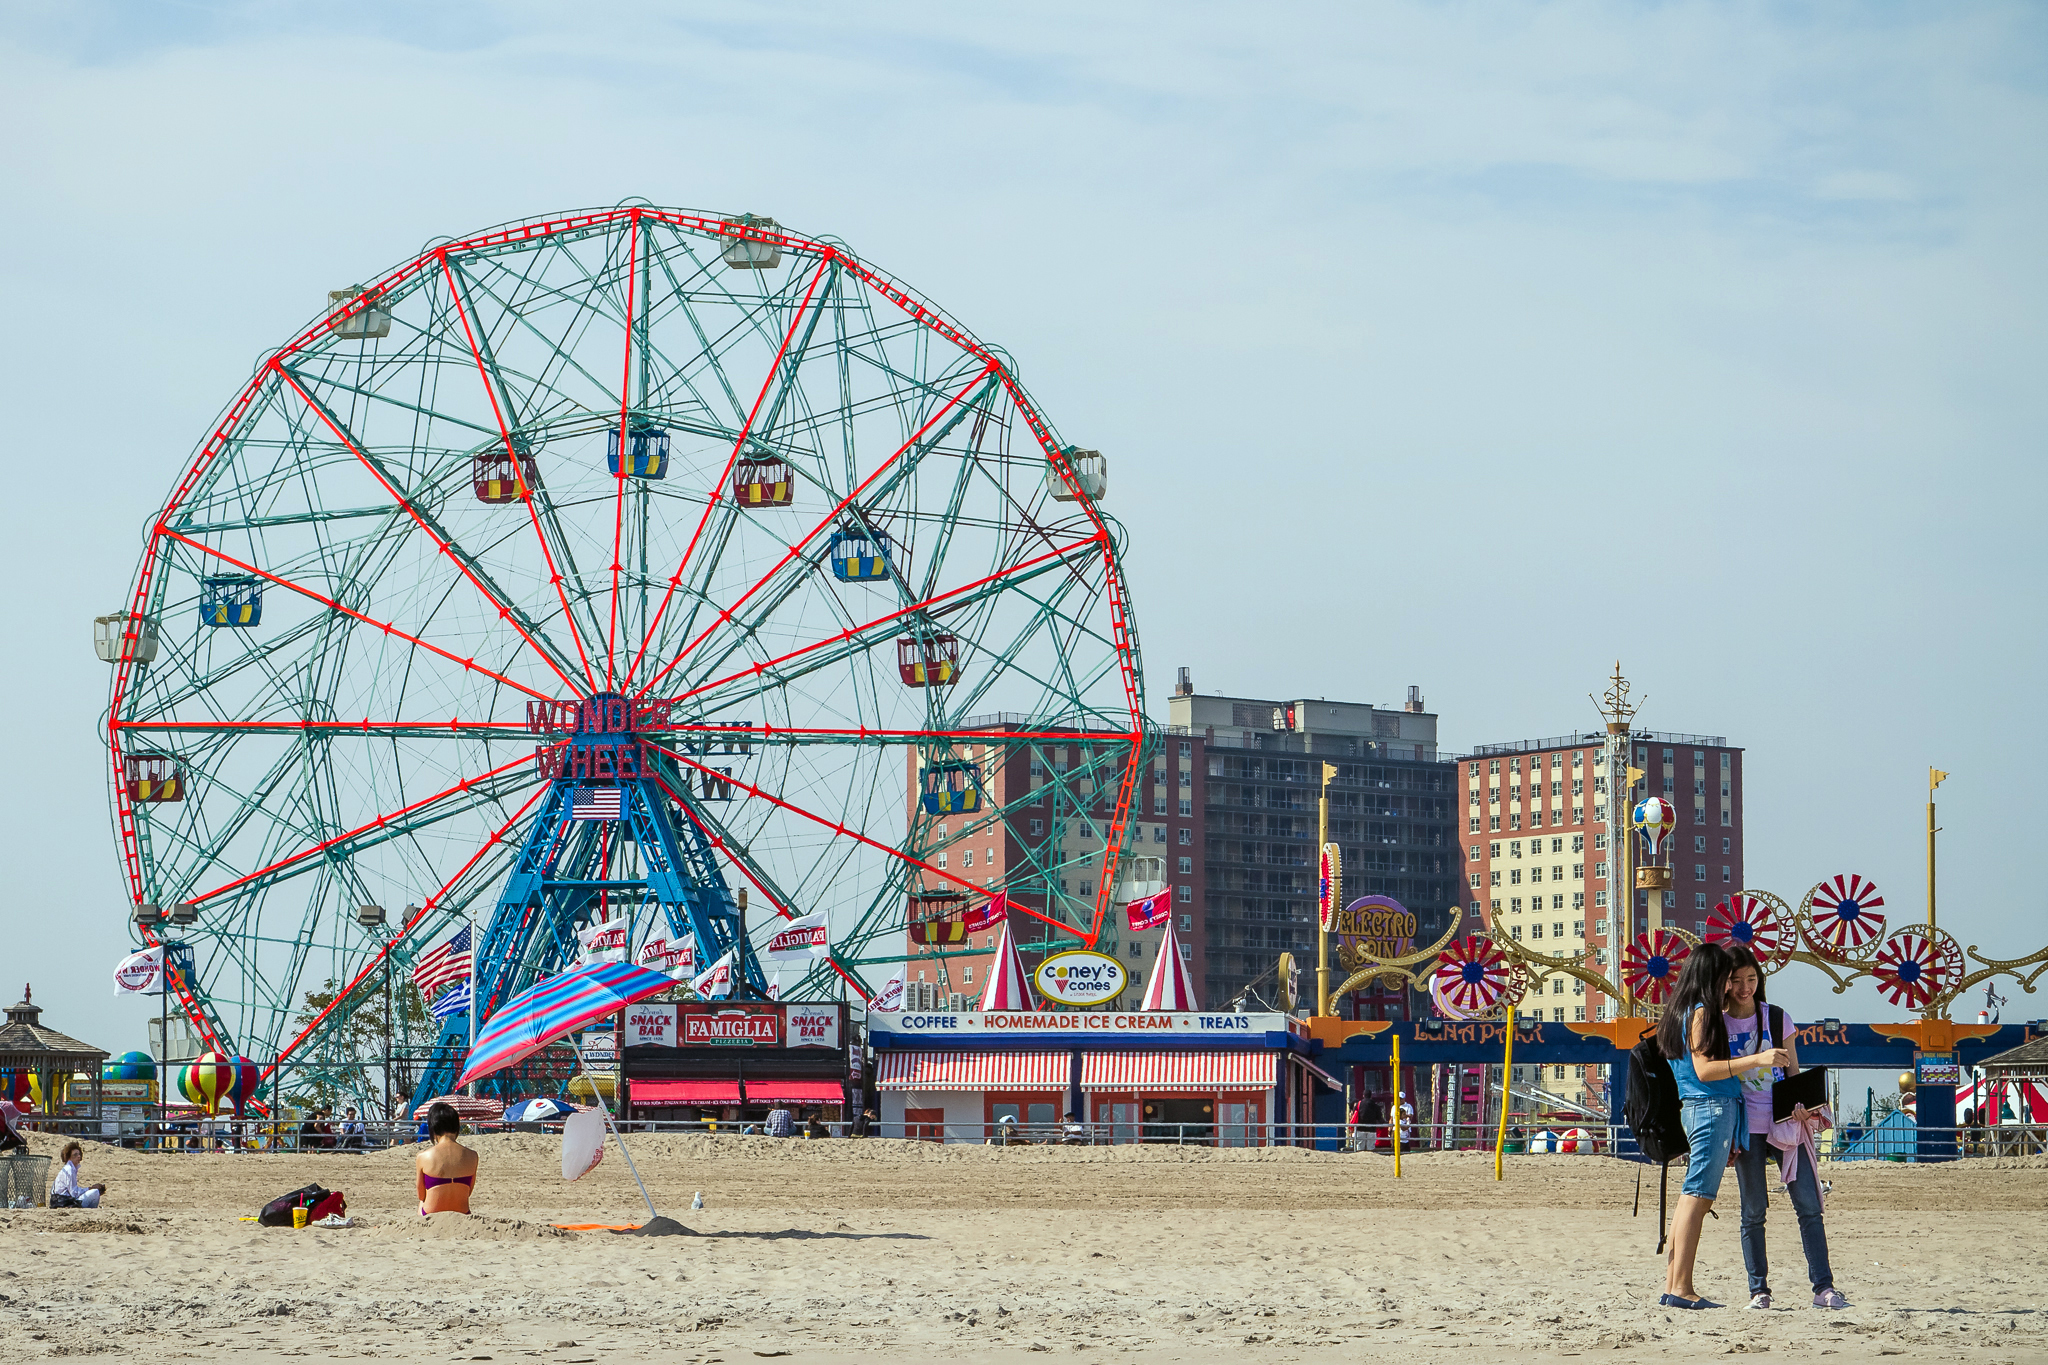 Smorgasburg spreads to Coney Island with shipping-container food vendors